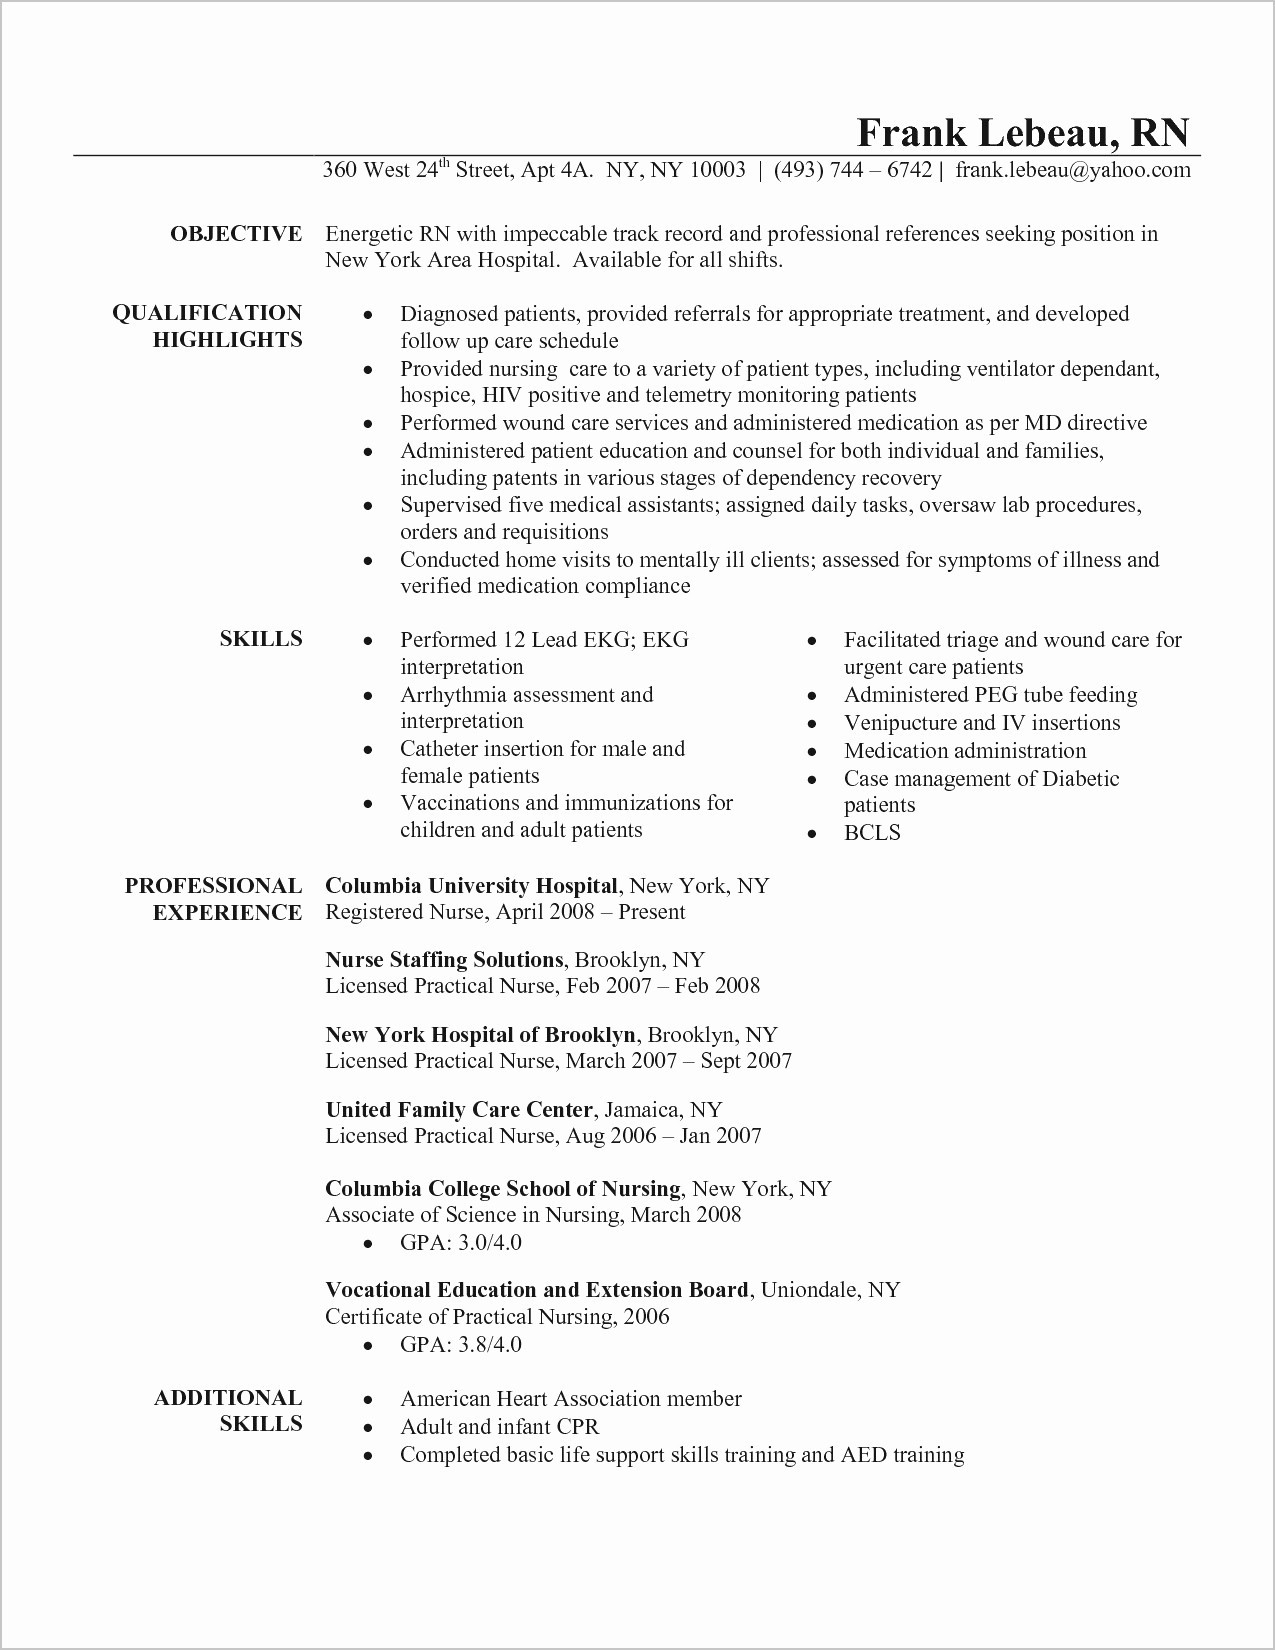 Resume for someone with No Experience - Resume for No Experience Luxury Inspirational Actor Resume Unique